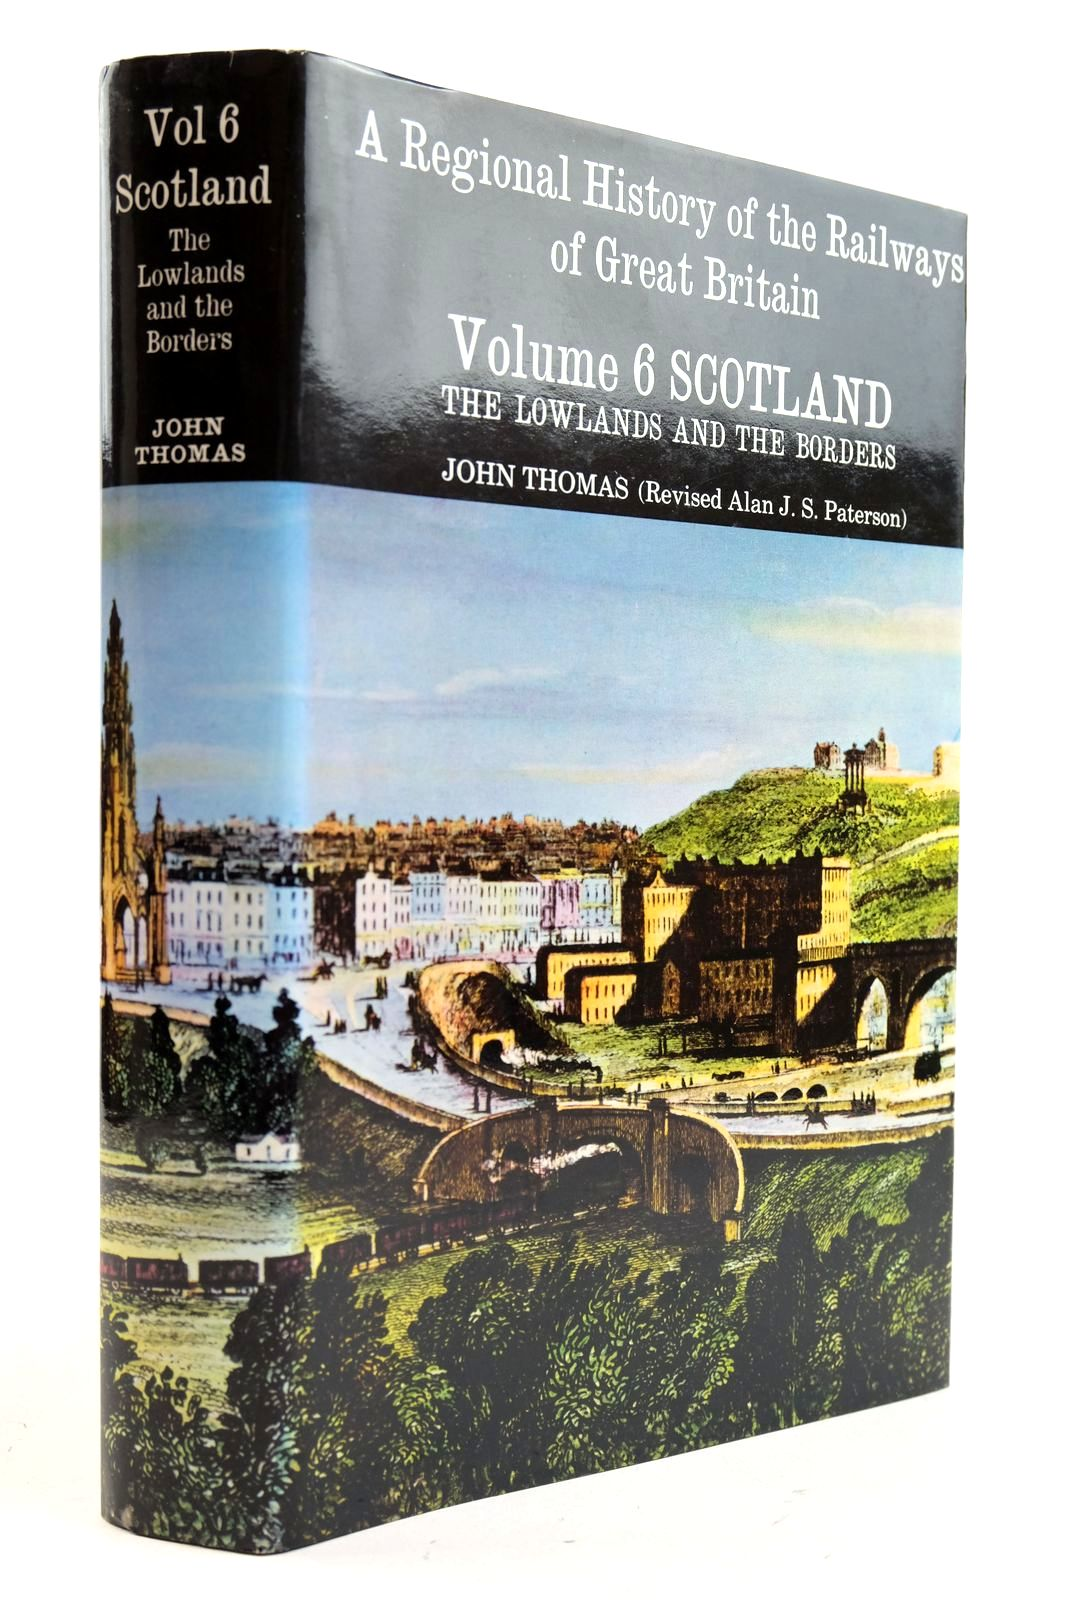 Photo of A REGIONAL HISTORY OF THE RAILWAYS OF GREAT BRITAIN VOLUME VI SCOTLAND THE LOWLANDS AND THE BORDERS written by Thomas, John published by David St John Thomas, David & Charles (STOCK CODE: 2133020)  for sale by Stella & Rose's Books